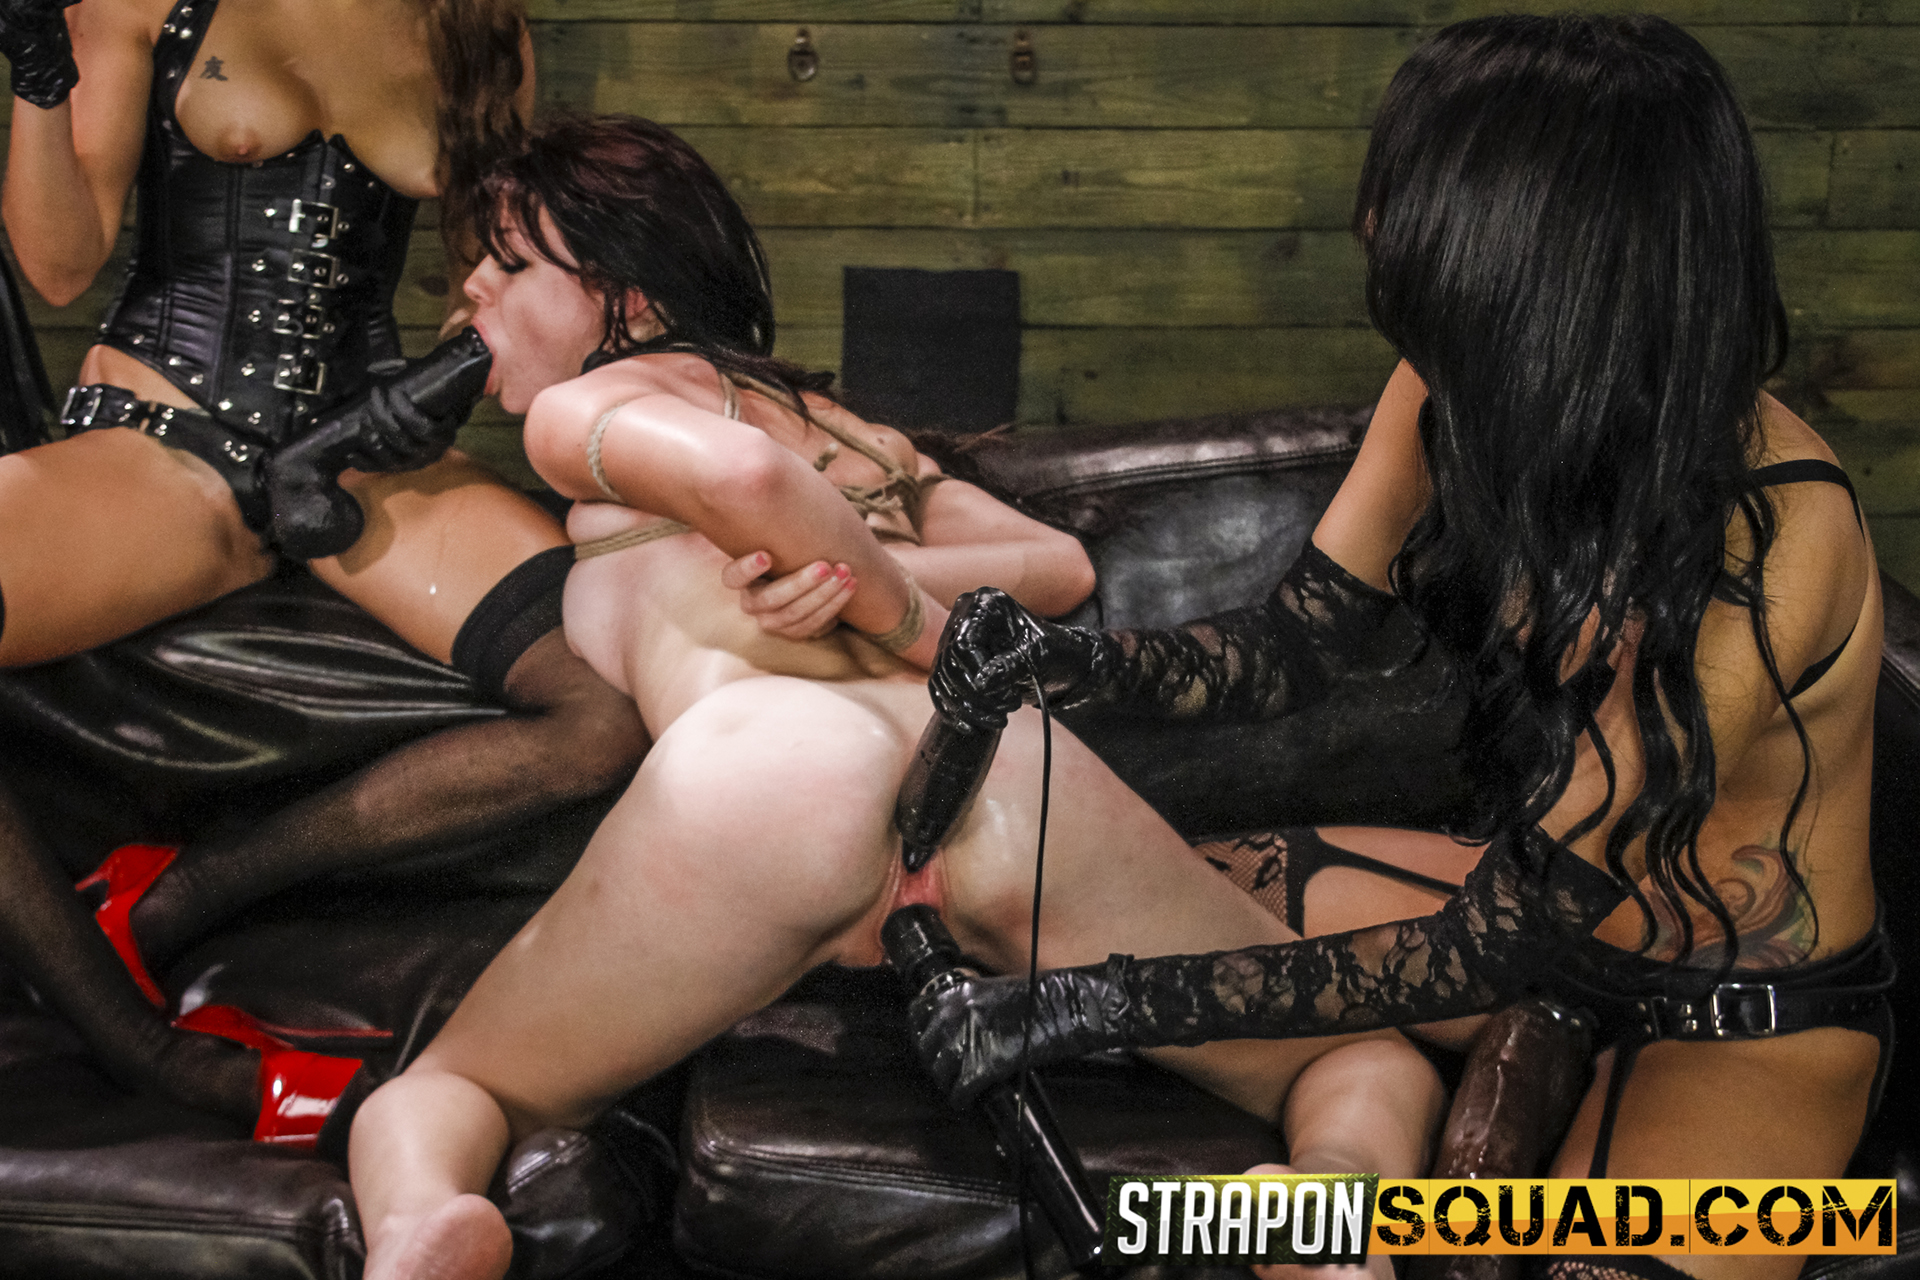 Lesbo Dominance & Sybian Saddle Three-way With Kaisey Dean, Marina Angel, Esmi Lee